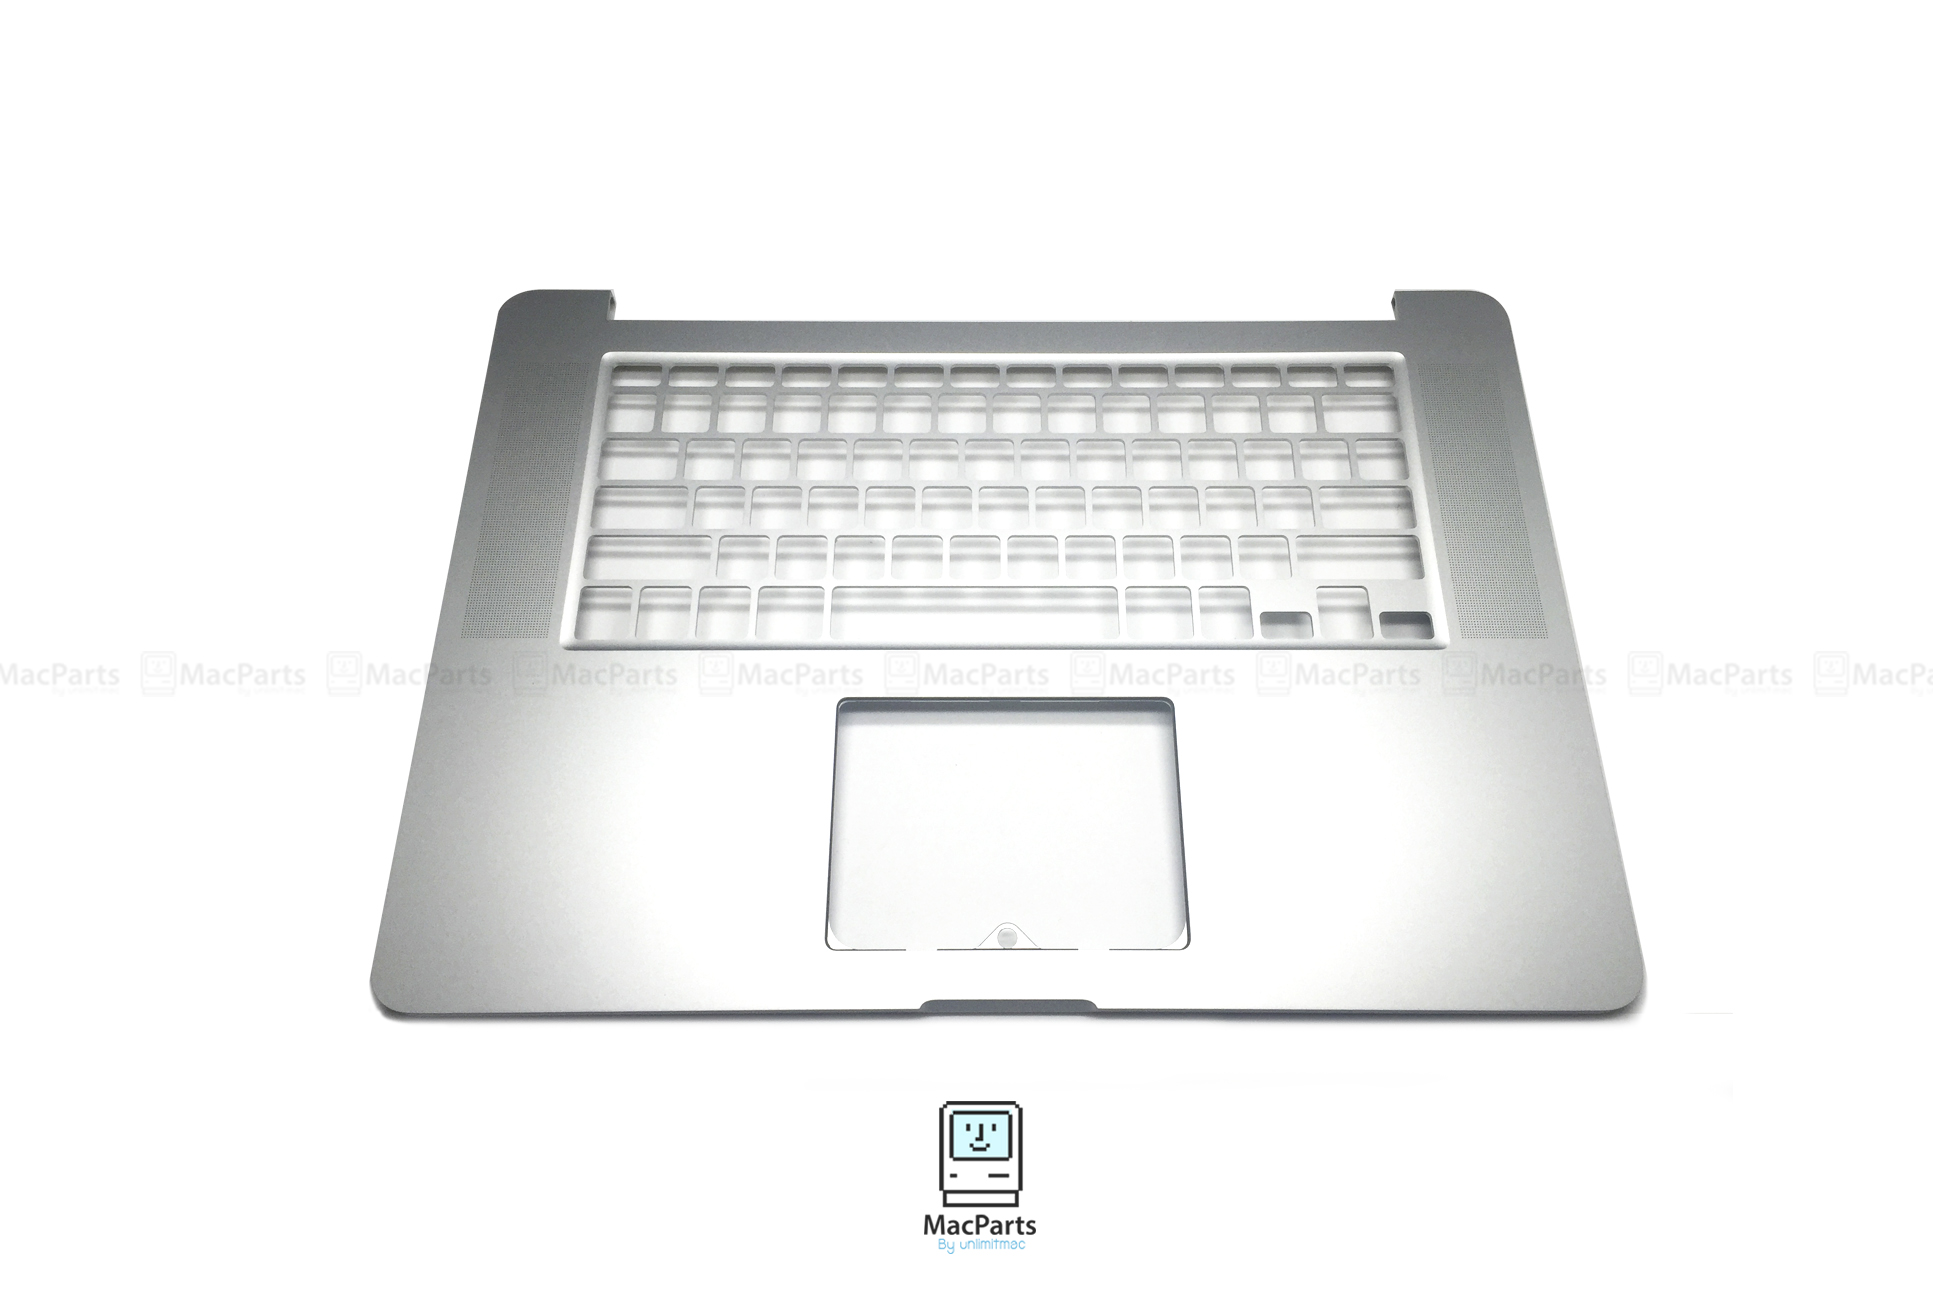 "613-9739 TopCase palmrest MacBook Pro retina 15"" Mid 2012 , Early 2013 No keyboard , No trackpad"